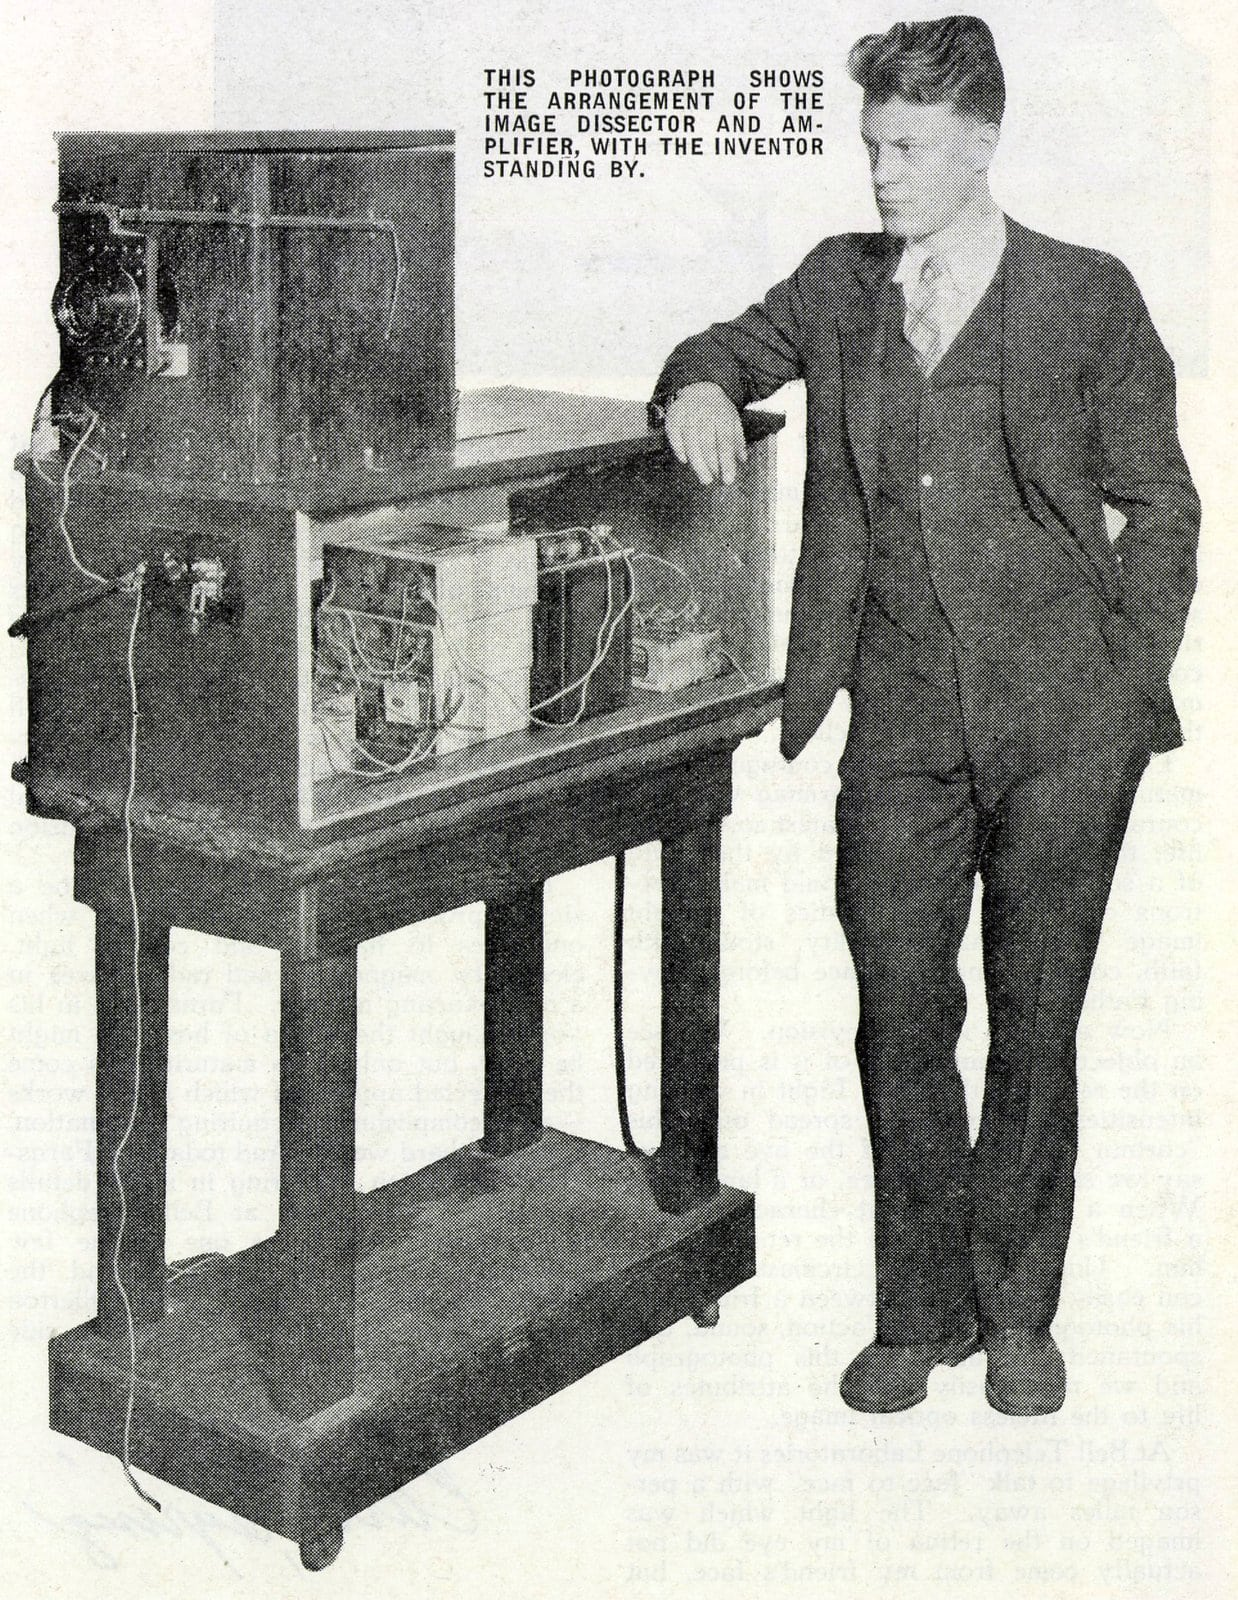 Philo T Farnsworth - Arrangement of television image dissector